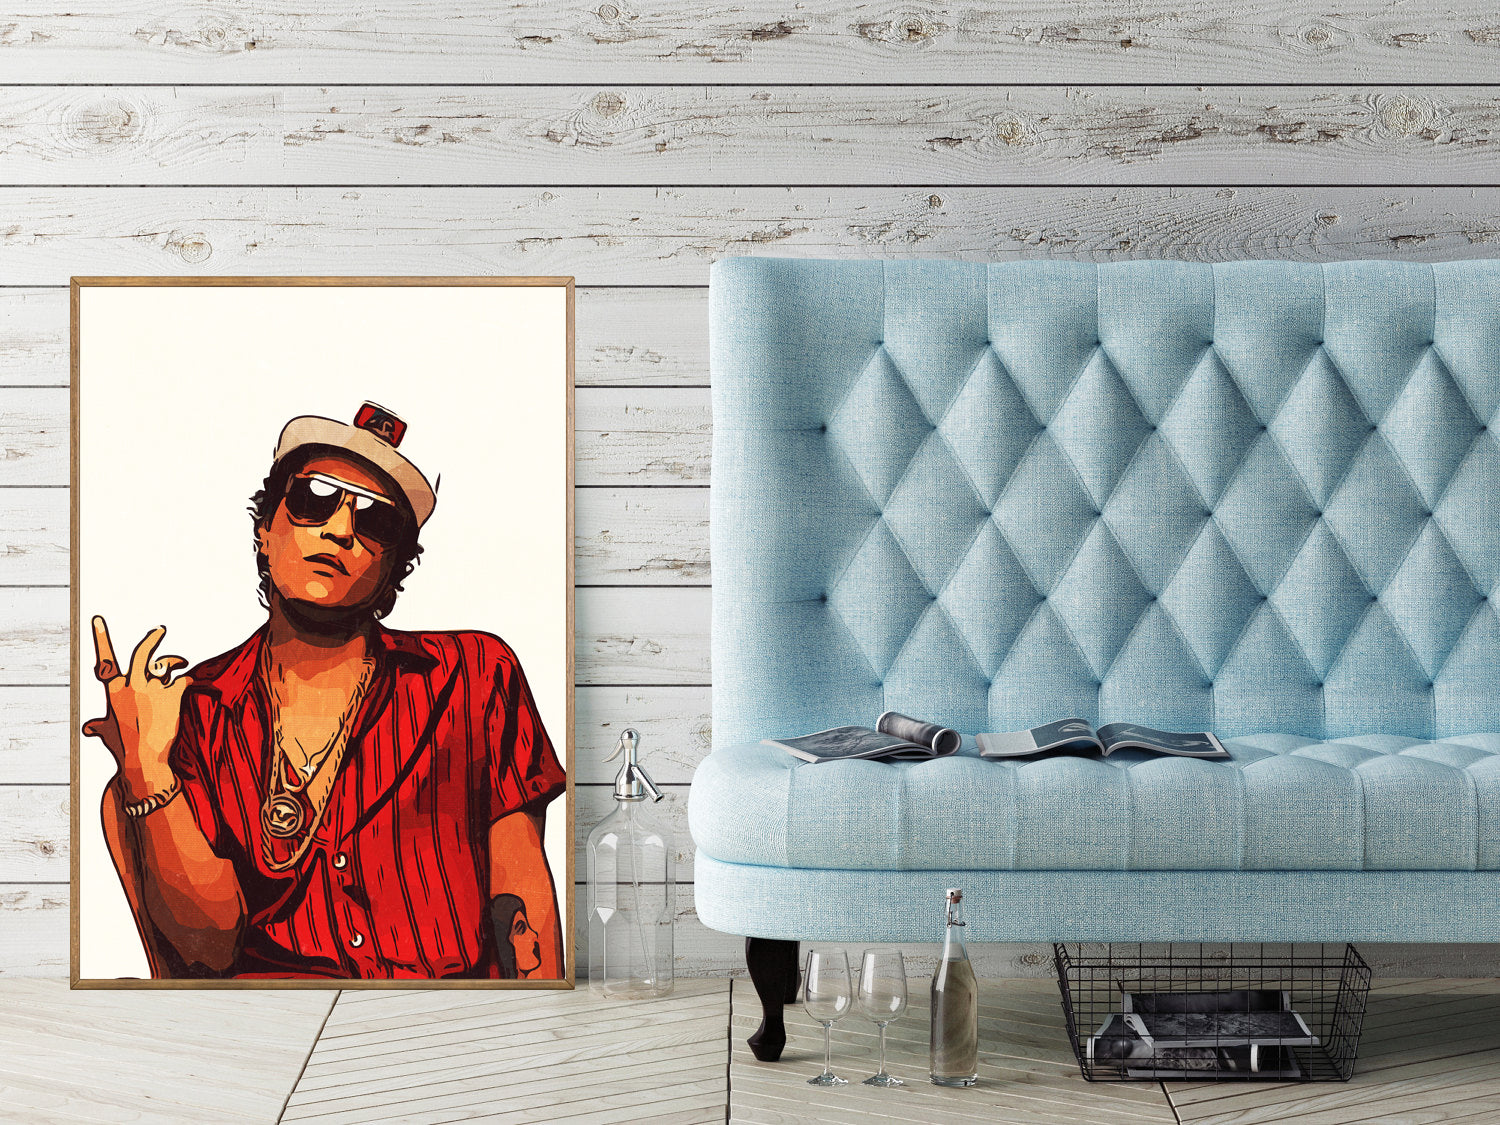 Bruno Mars Poster,Bruno Mars Print,Bruno Mars Artwork,Bruno Mars Art Giclee Print,Music Poster,Instant Download,Digital Print,Pop Art,Painting